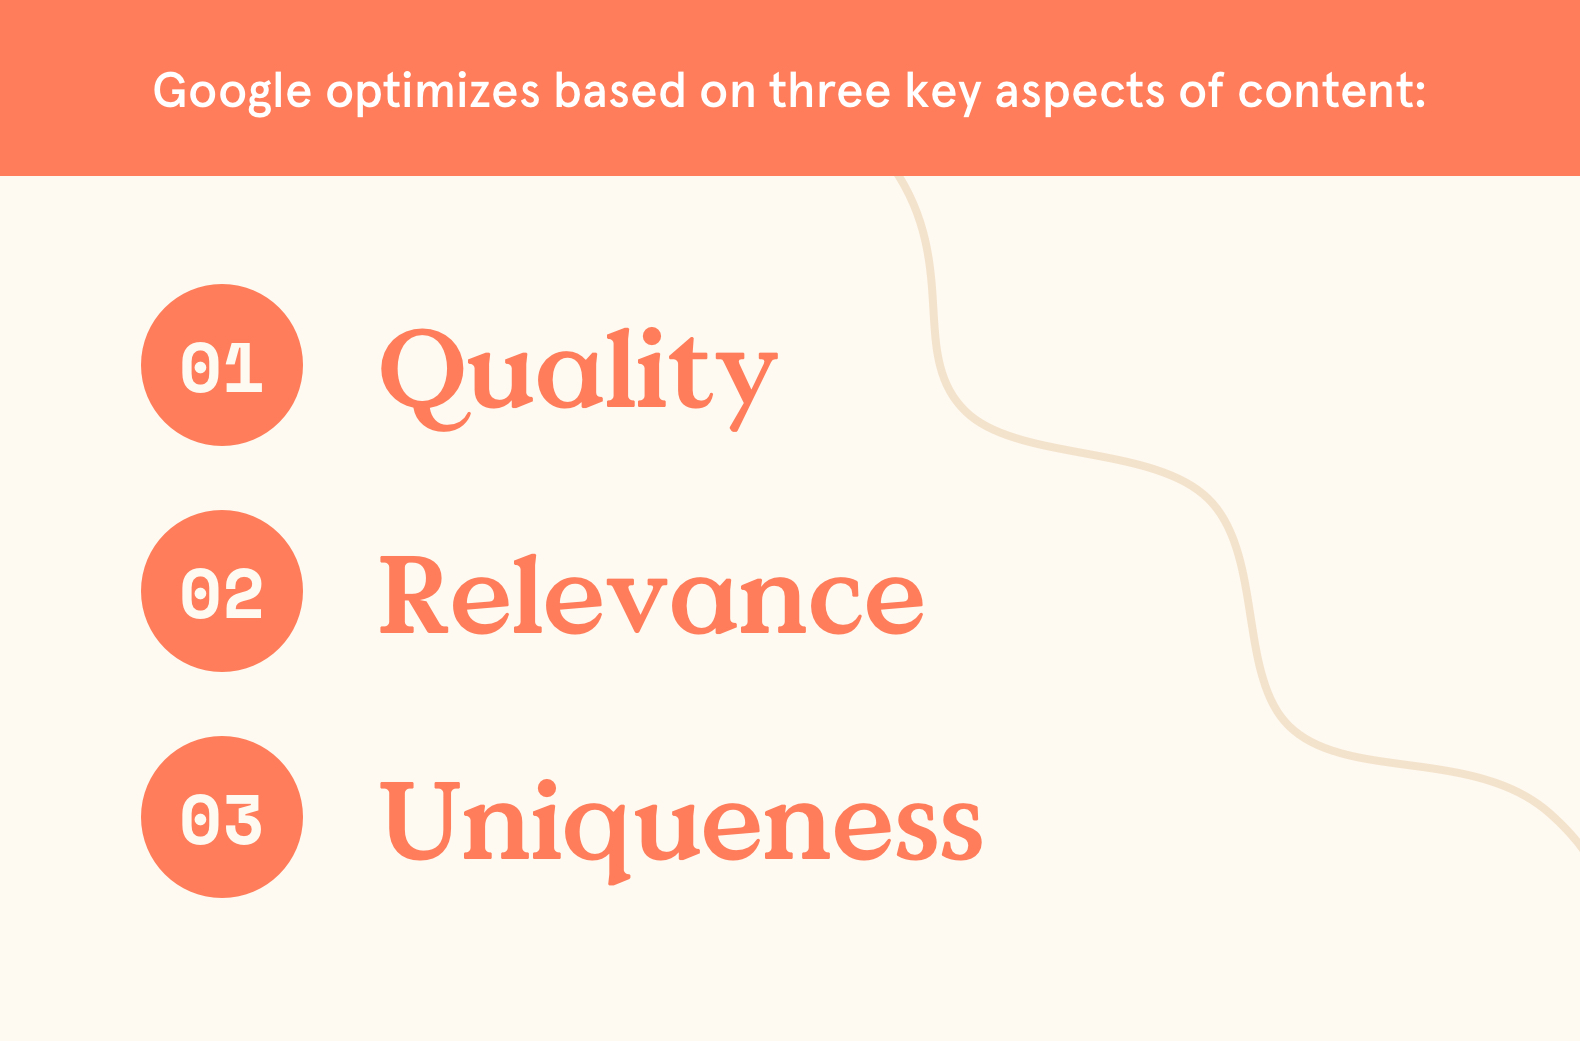 Google optimizes based on quality, relevance, and uniqueness